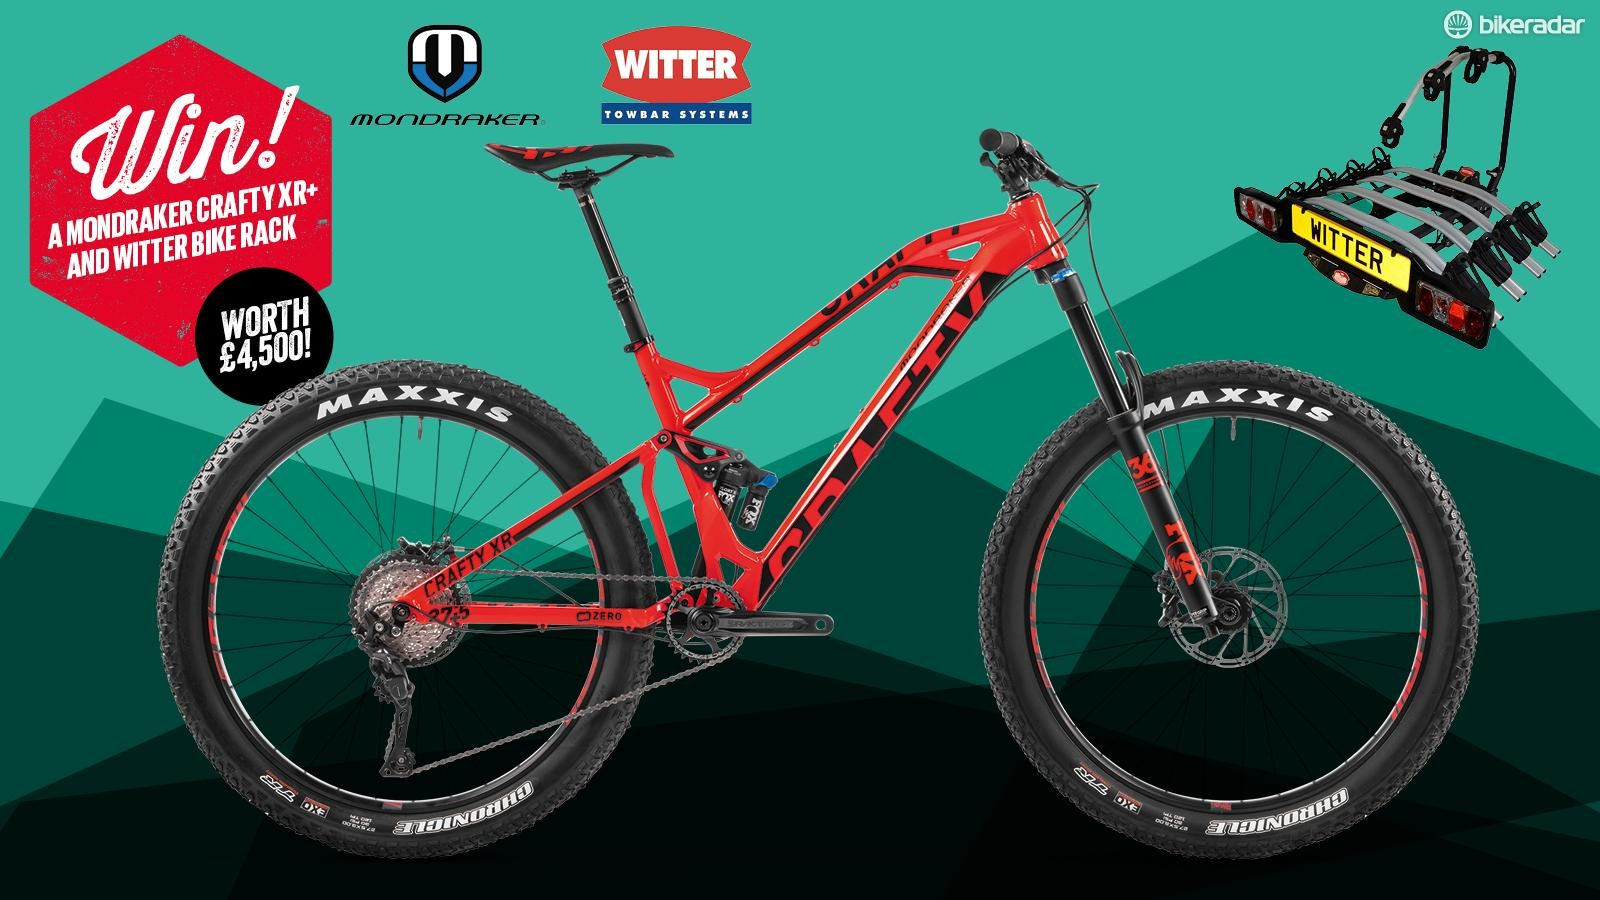 Win a Mondraker Crafty XR+ and Witter bike rack!